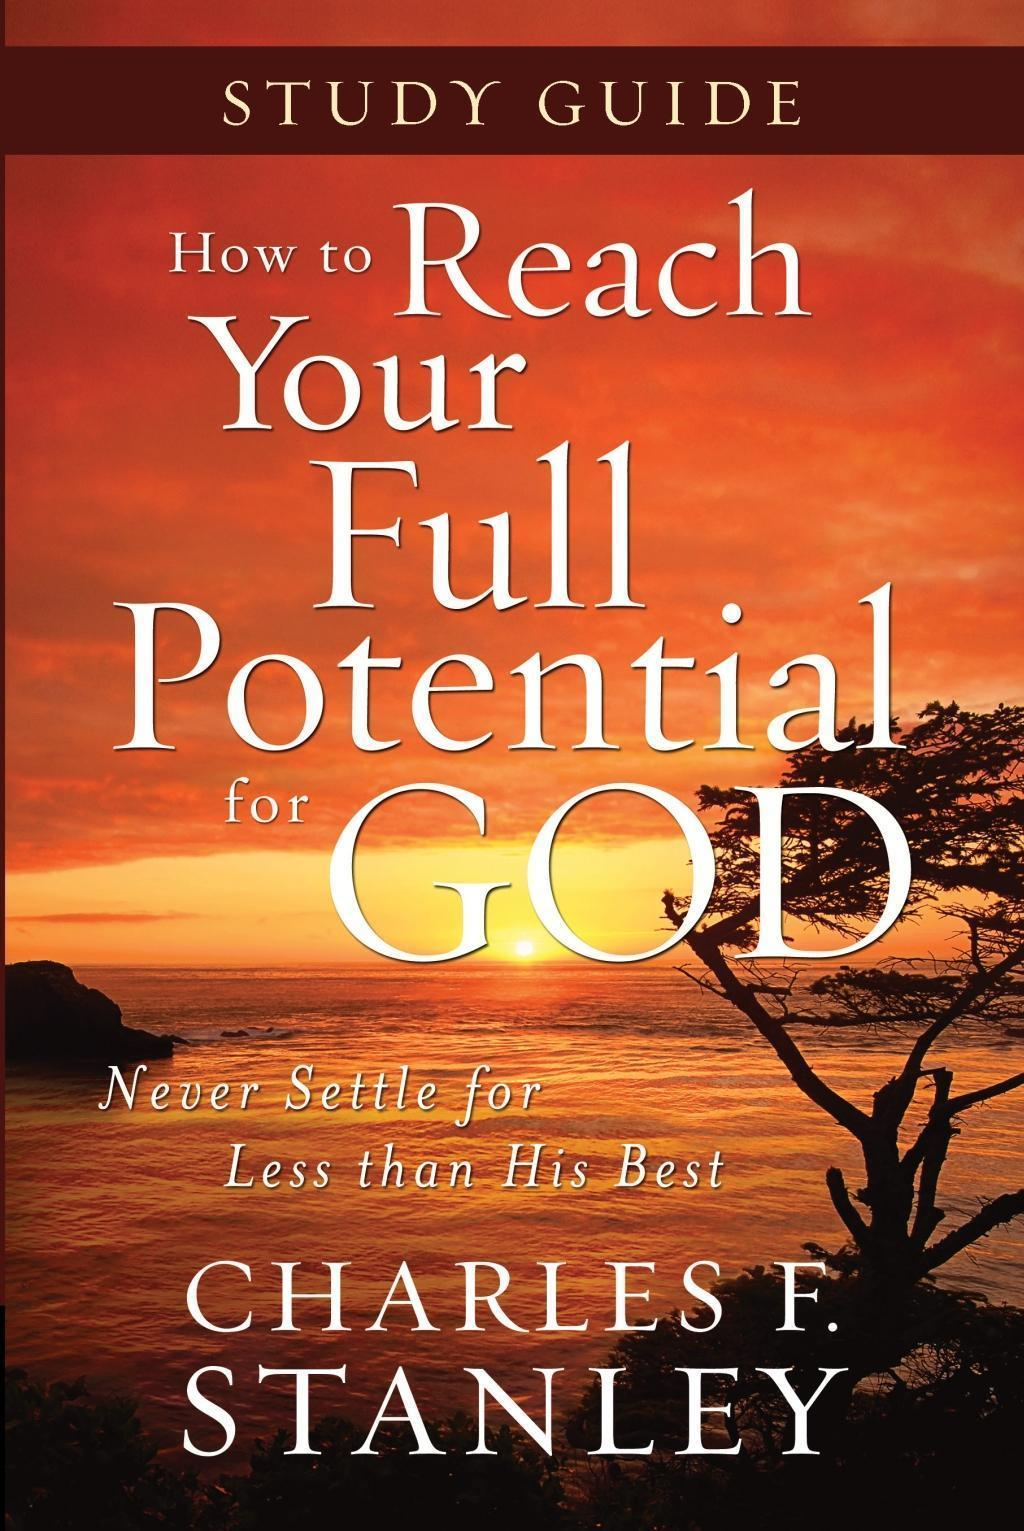 How to Reach Your Full Potential for God Study Guide